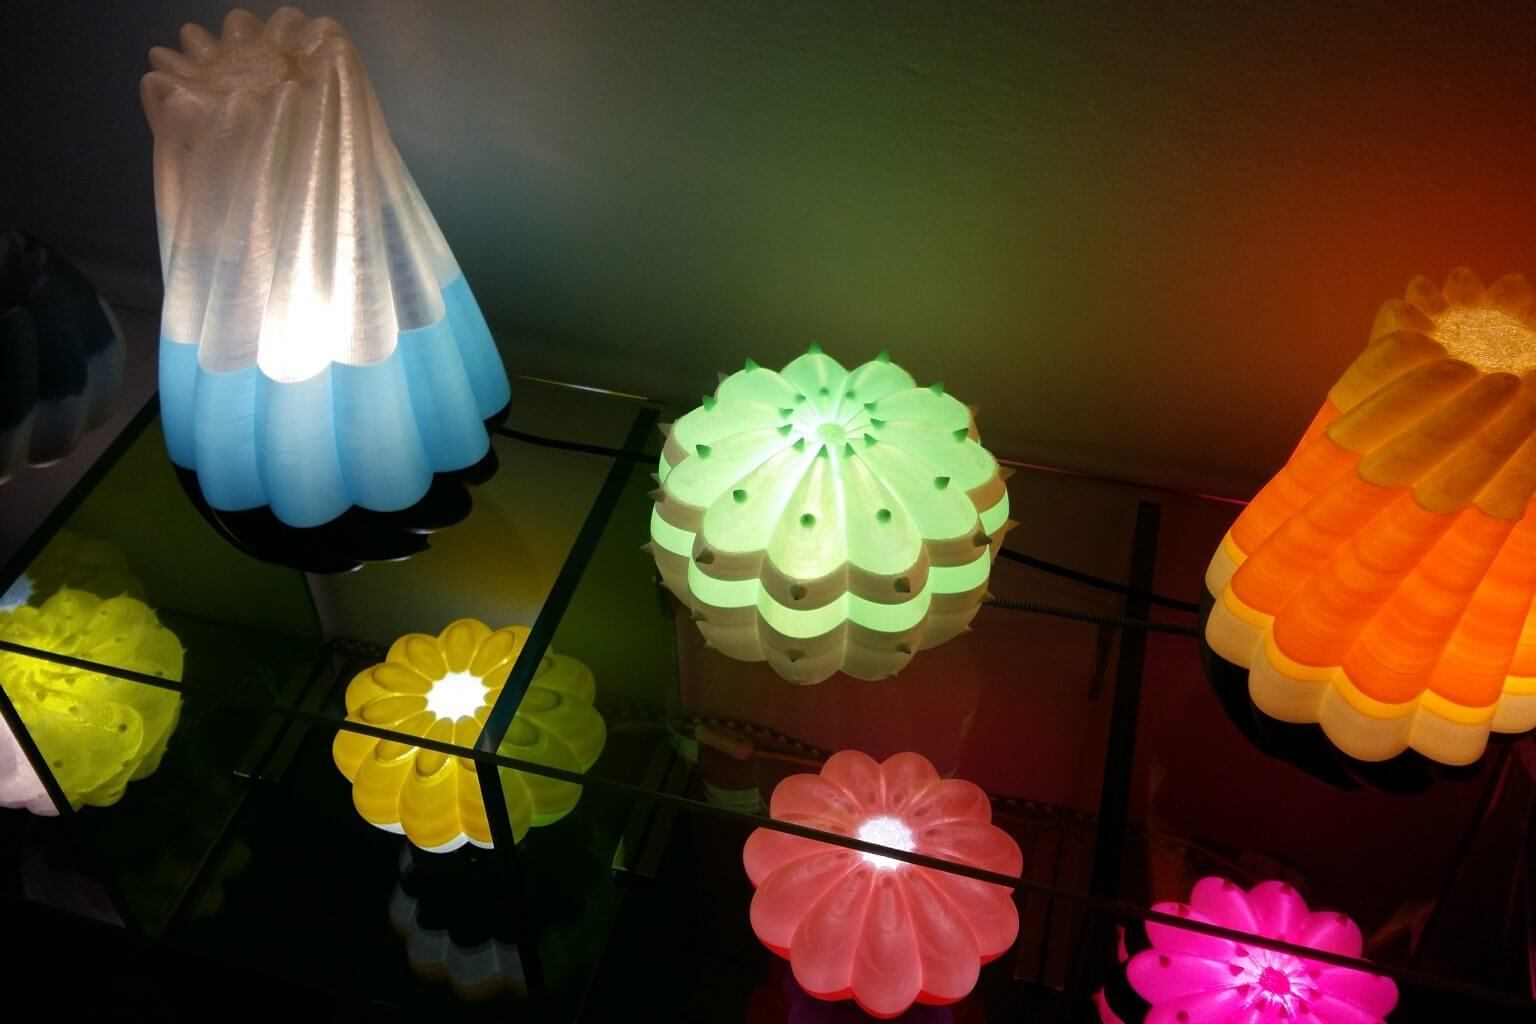 3D Printer Making Lamps and Lanterns Creates the Beauty of Creativity-02